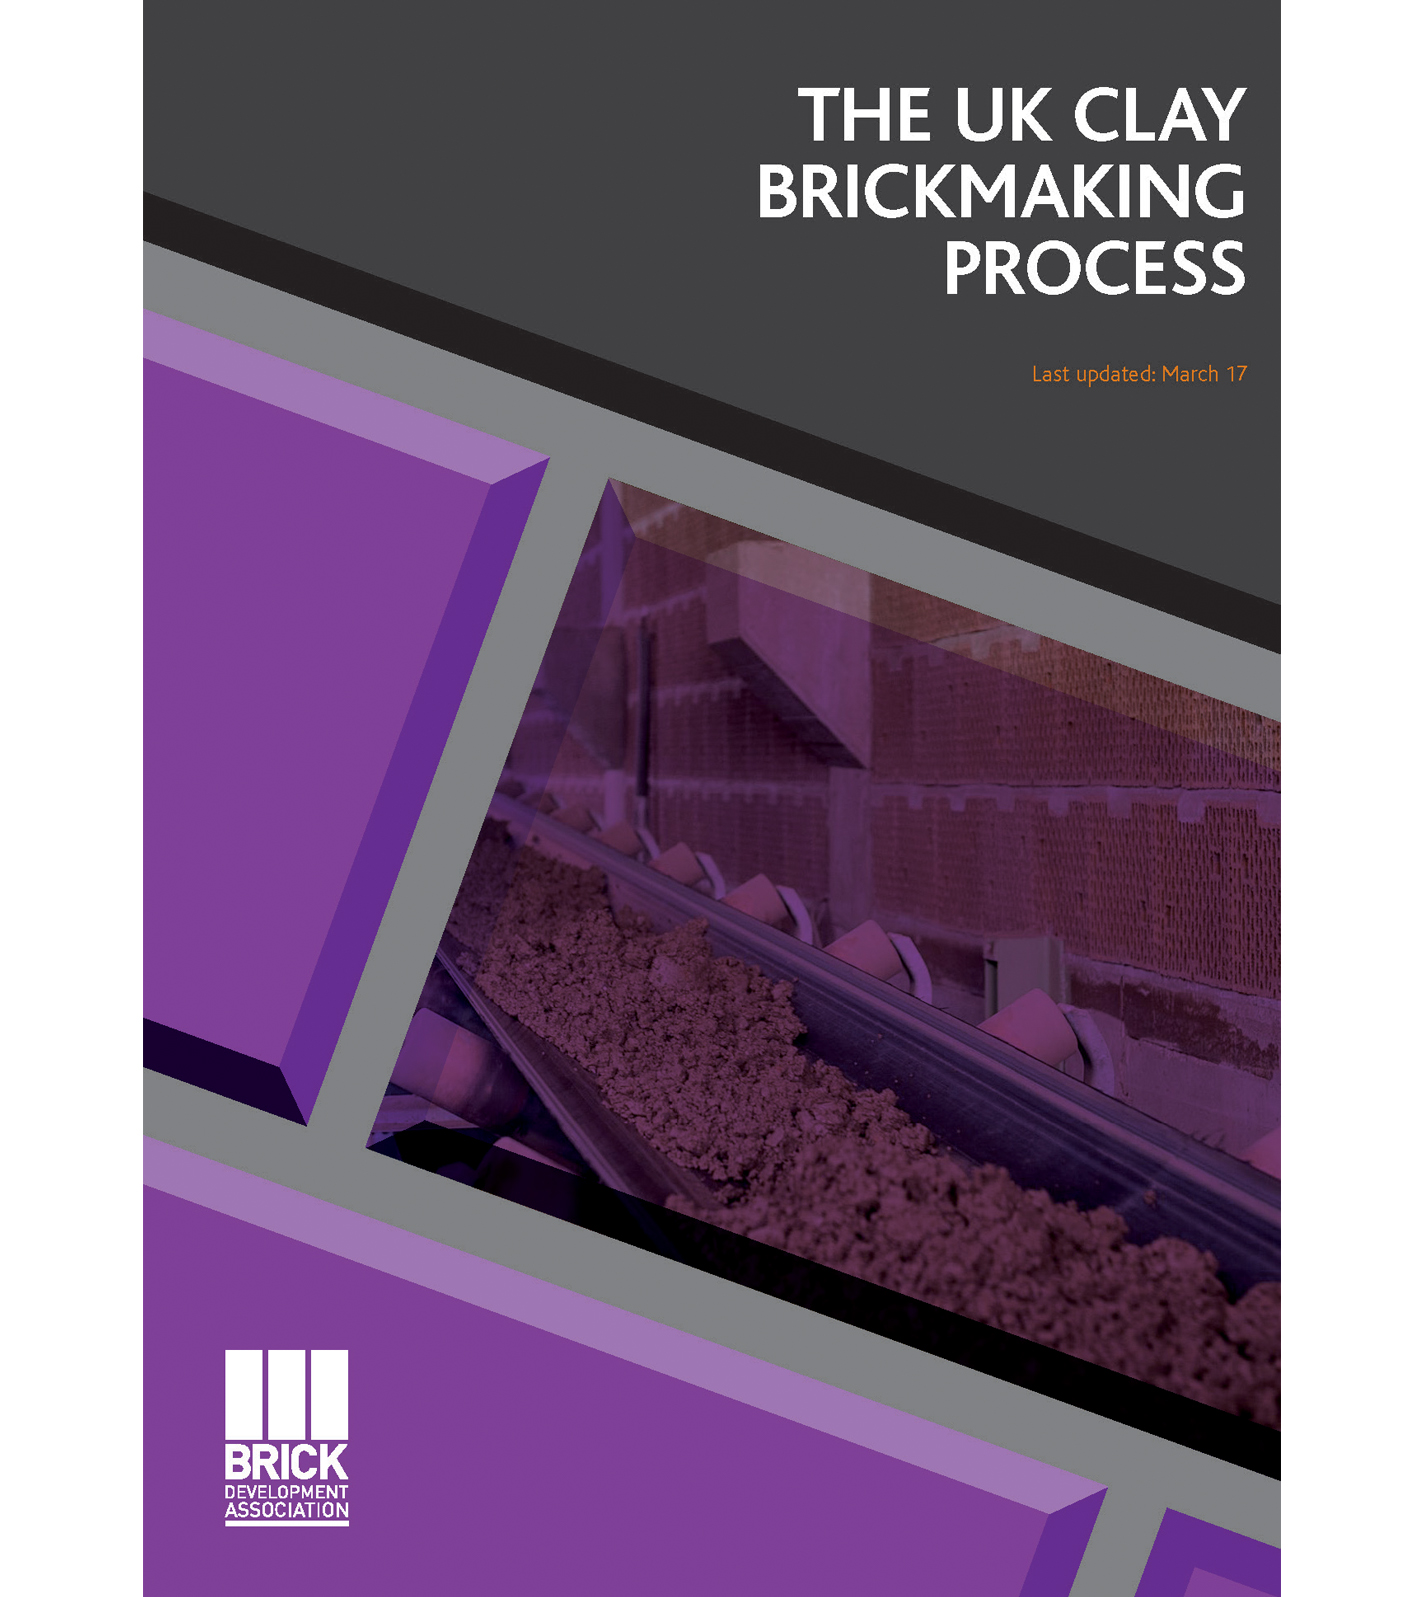 THE UK CLAY BRICKMAKING PROCESS